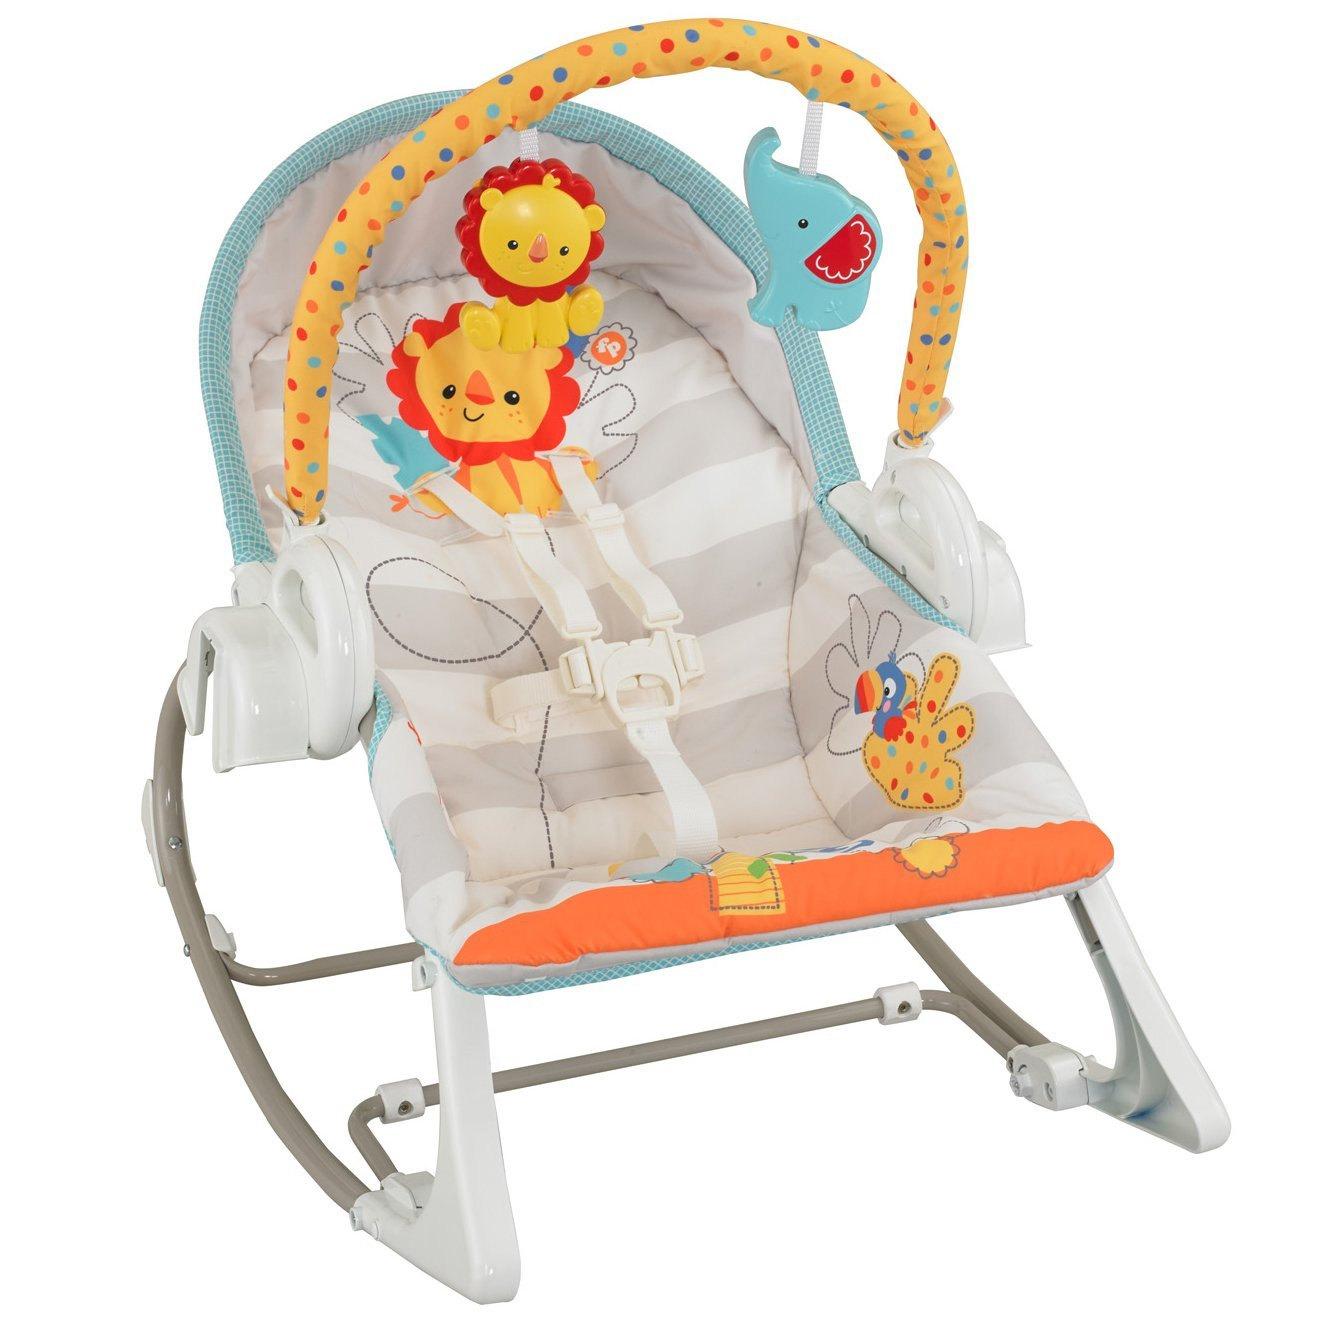 Nuovo fisher price 3 in 1 swing n rocker musical bambino for Sedia a dondolo fisher price